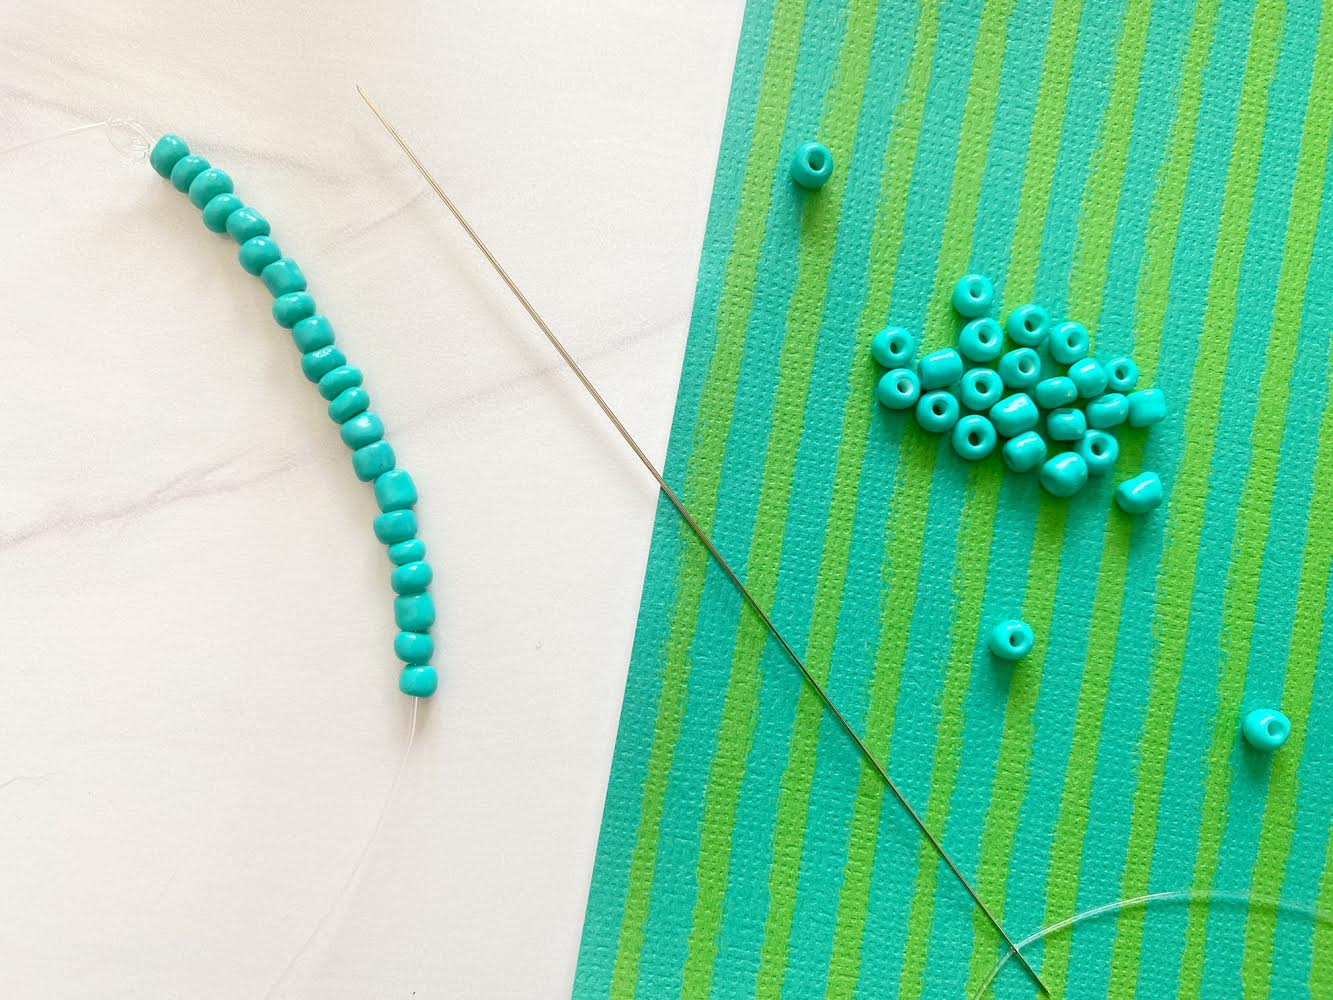 sliding blue beads onto string using bead needle